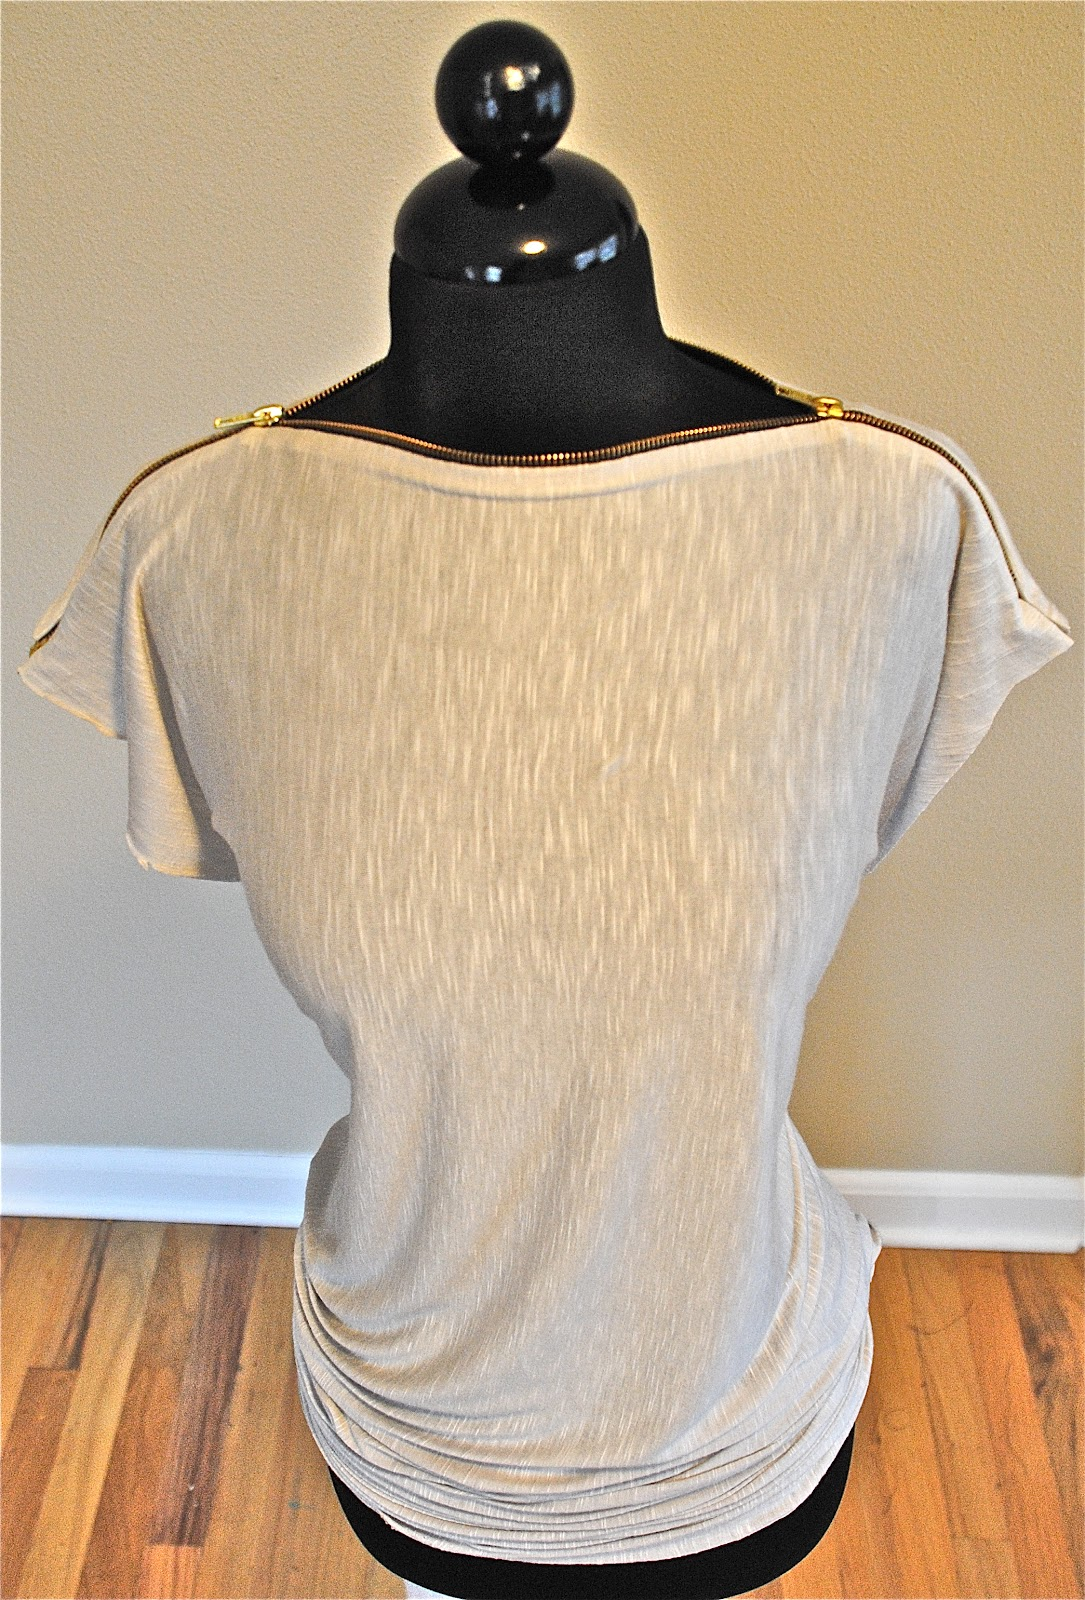 My Zipper Tee DIY tutorial...Tshirt Recycle